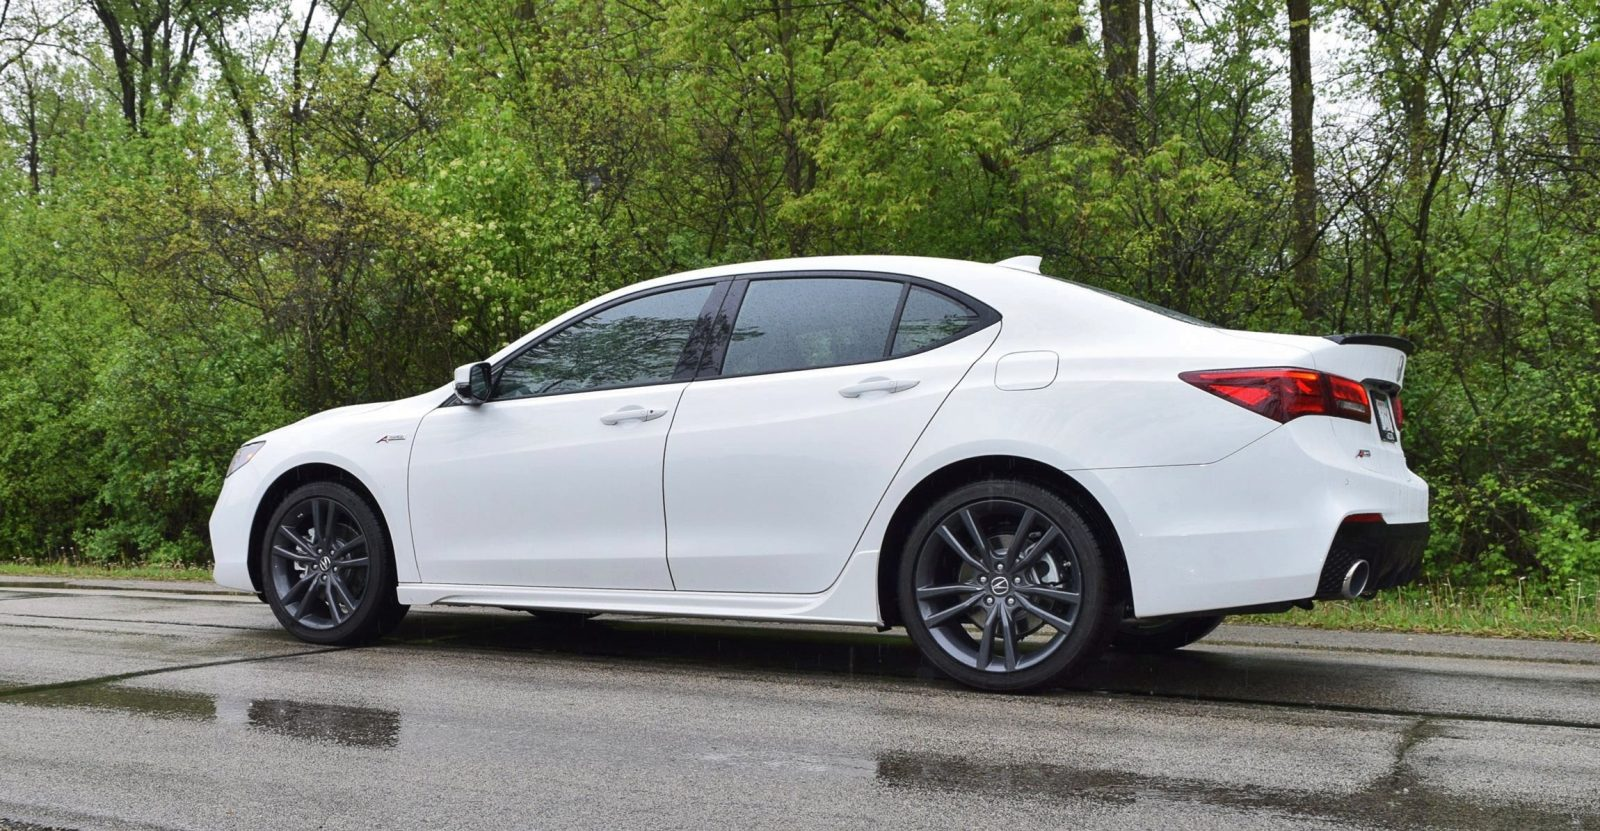 2018 acura tlx a spec sh awd first drive video 42 photo flyaround. Black Bedroom Furniture Sets. Home Design Ideas